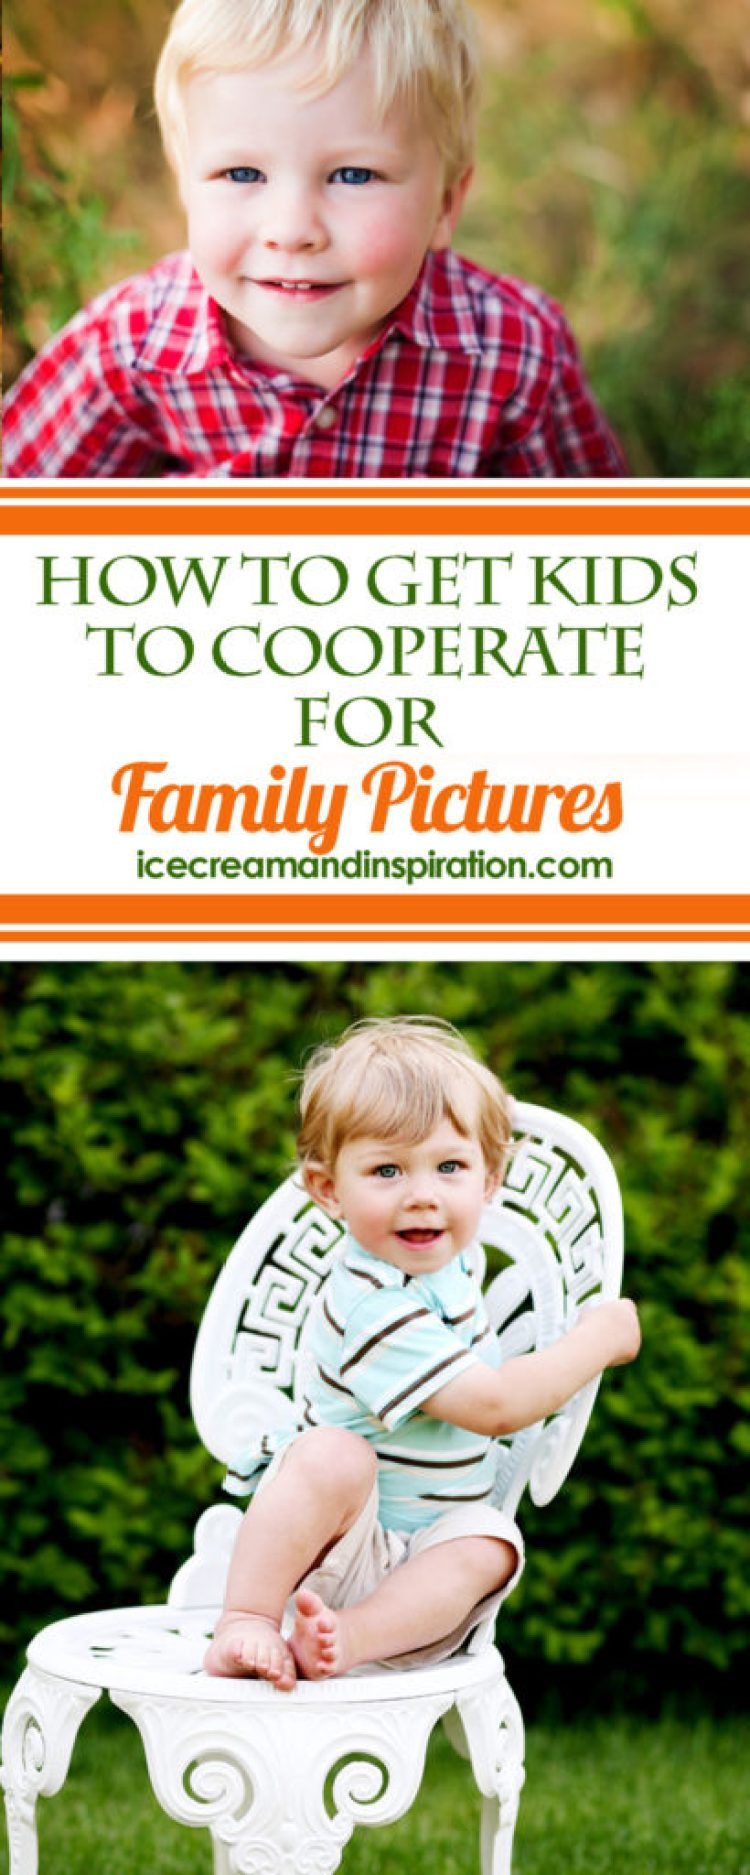 Getting kids to cooperate for pictures is like wrangling monkeys! Use these tips from a Certified Professional Photographer to make your next shoot a success!